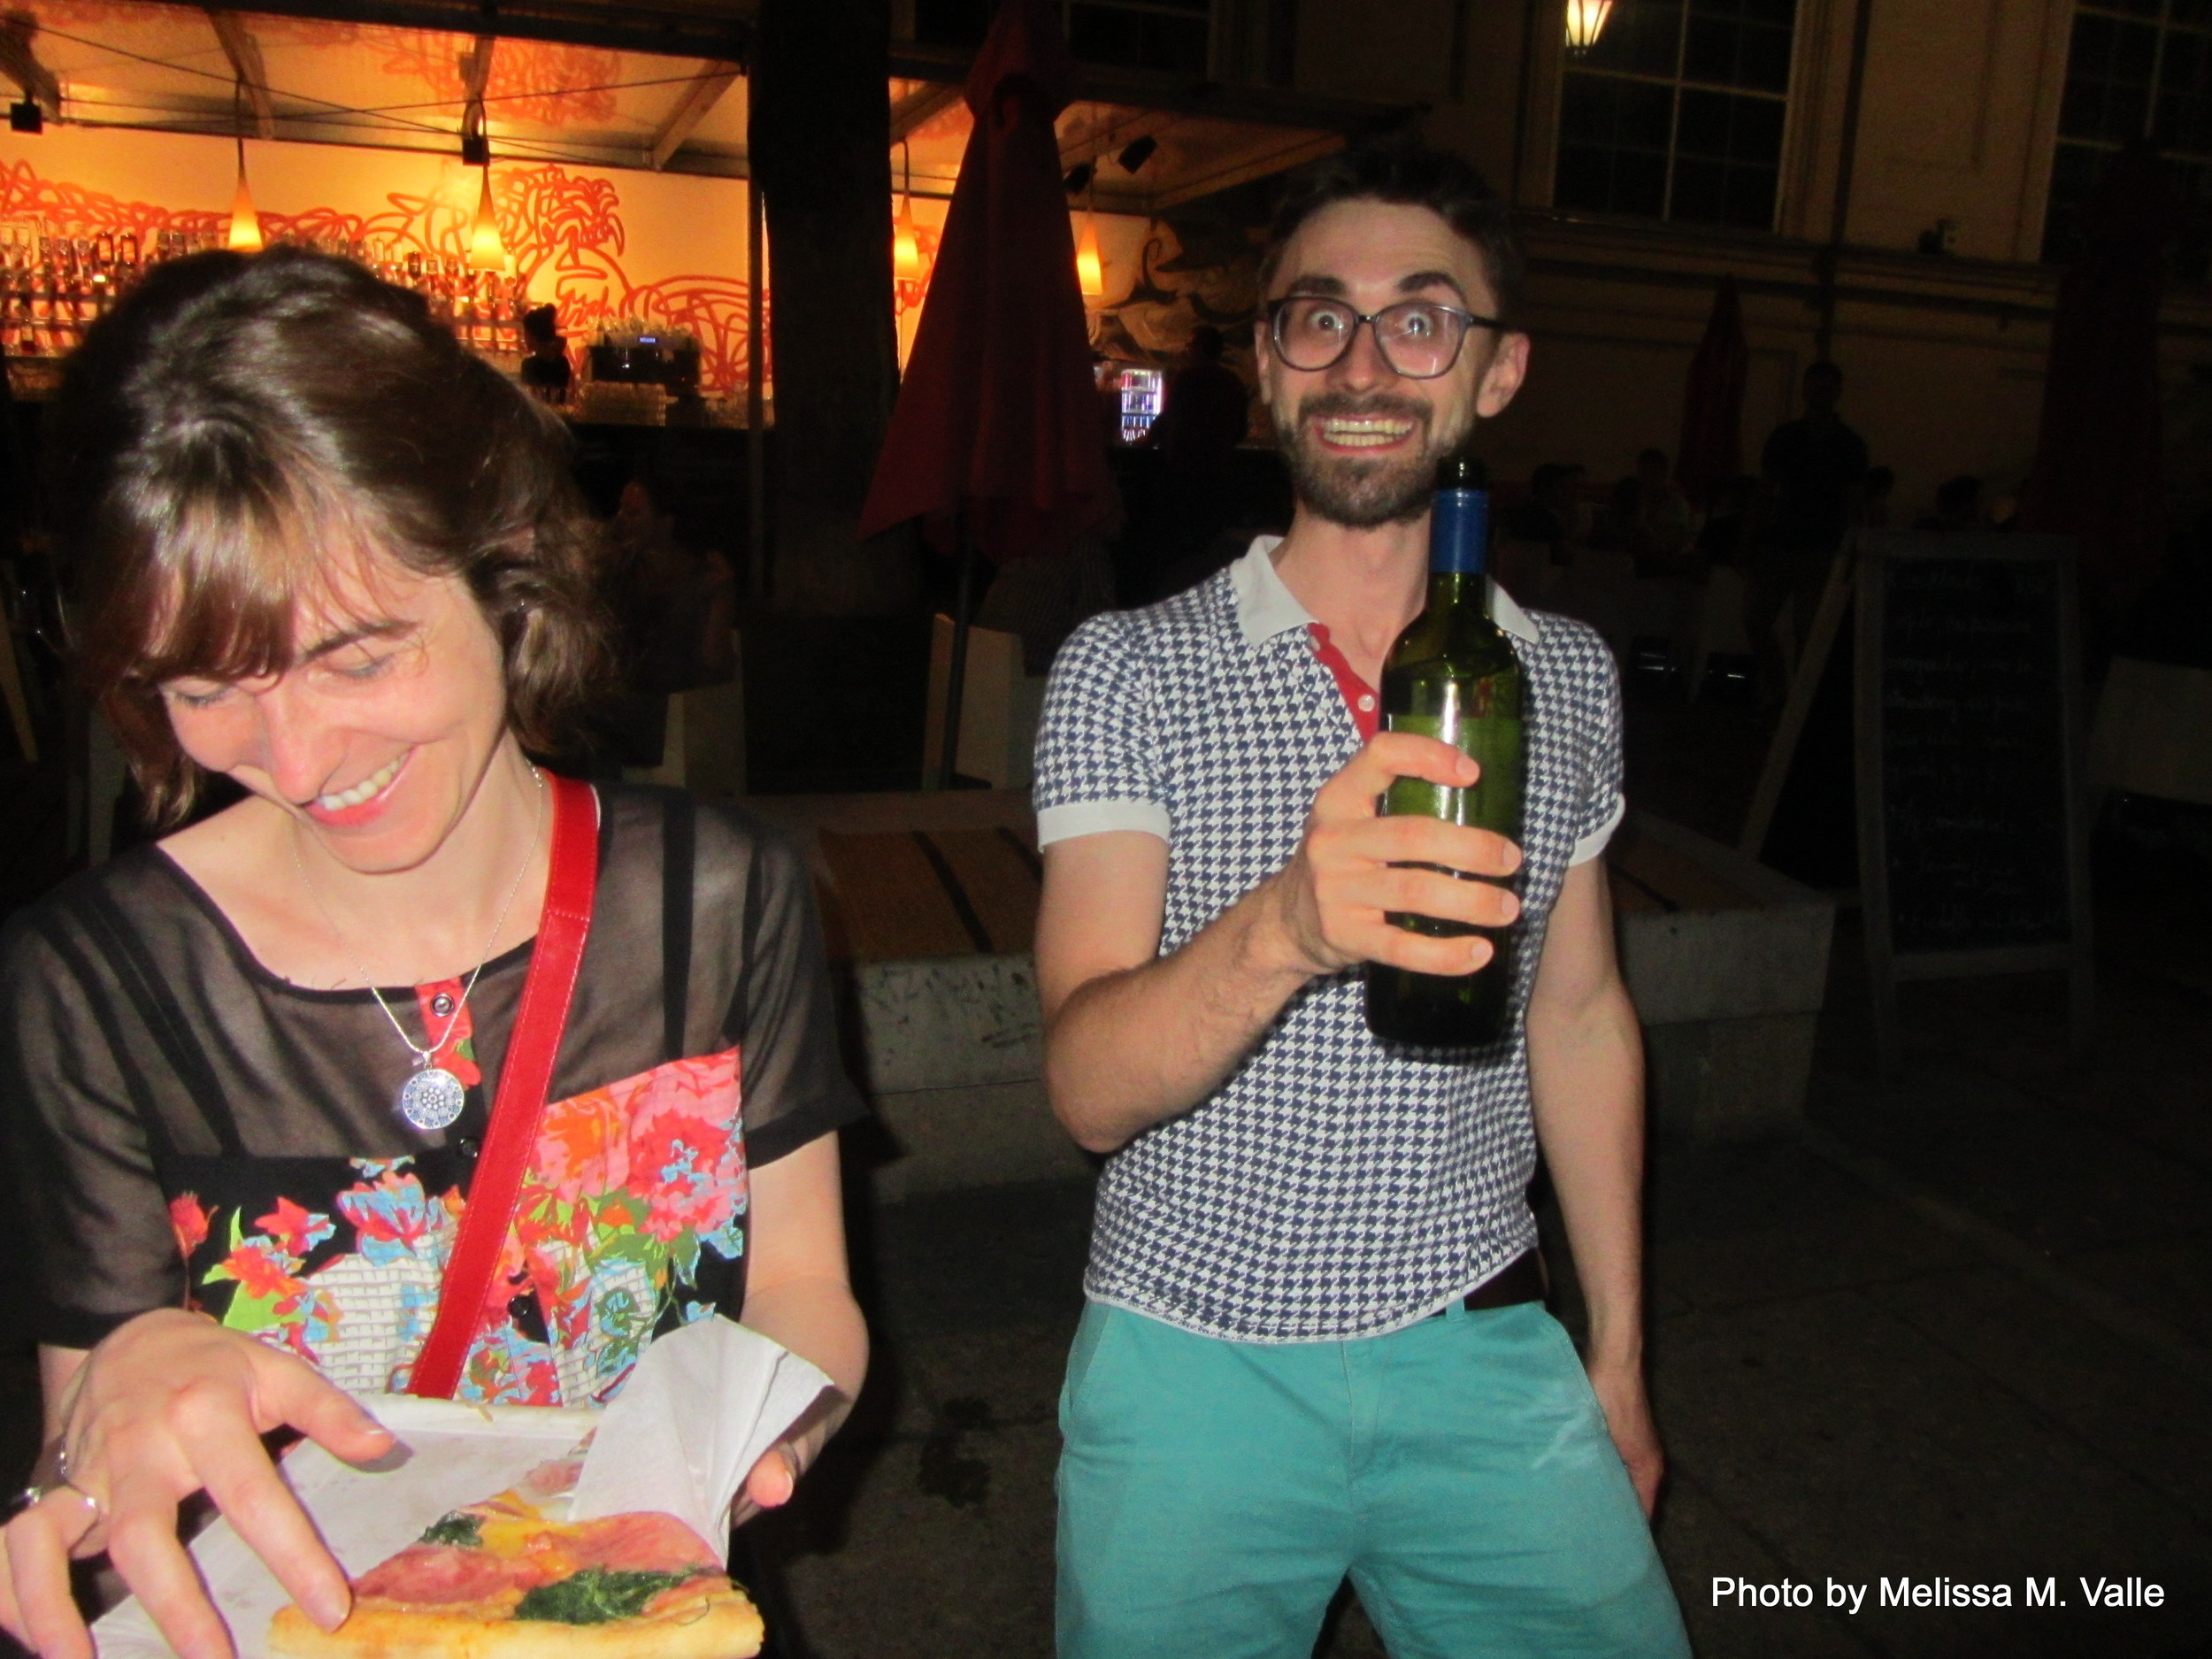 7.7.14 Vienna, Austria-wining it up in Museum Quartier after Amin lecture (12)- Andreas and Elisabeth.JPG